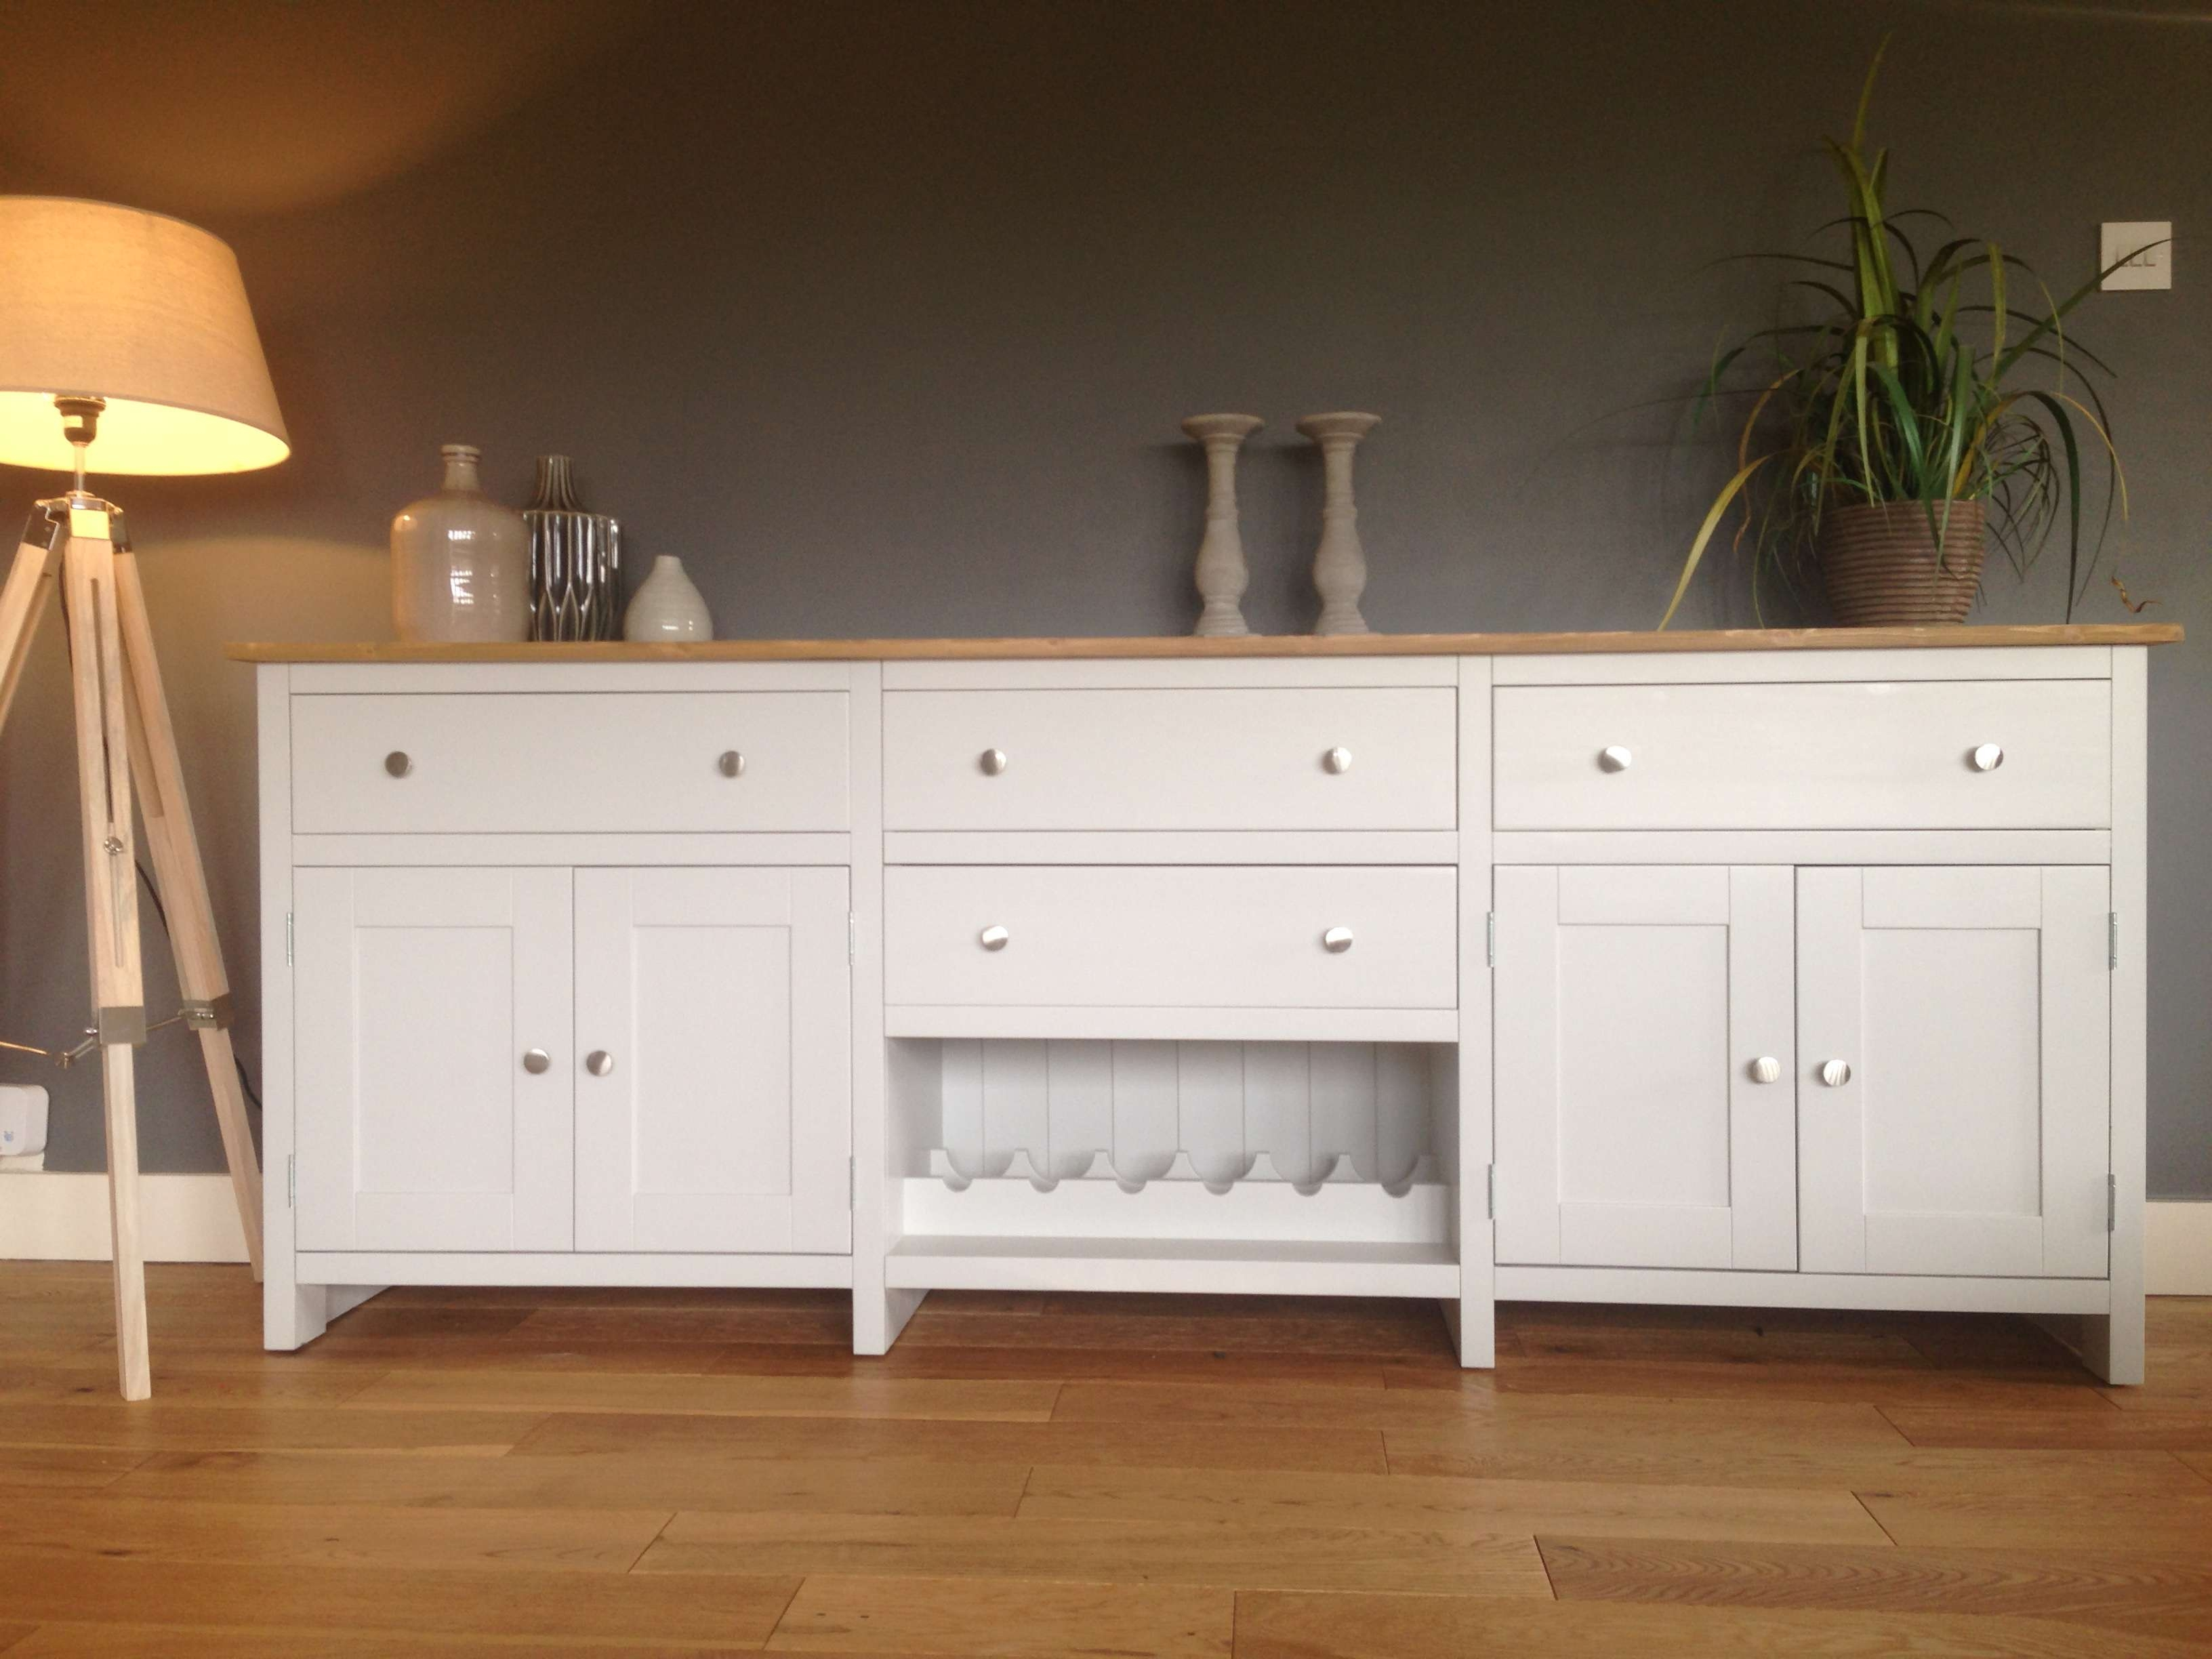 7Ft Solid Pine Sideboard With Wine Rack – Nest At Number 20 With Pine Sideboards (View 1 of 20)